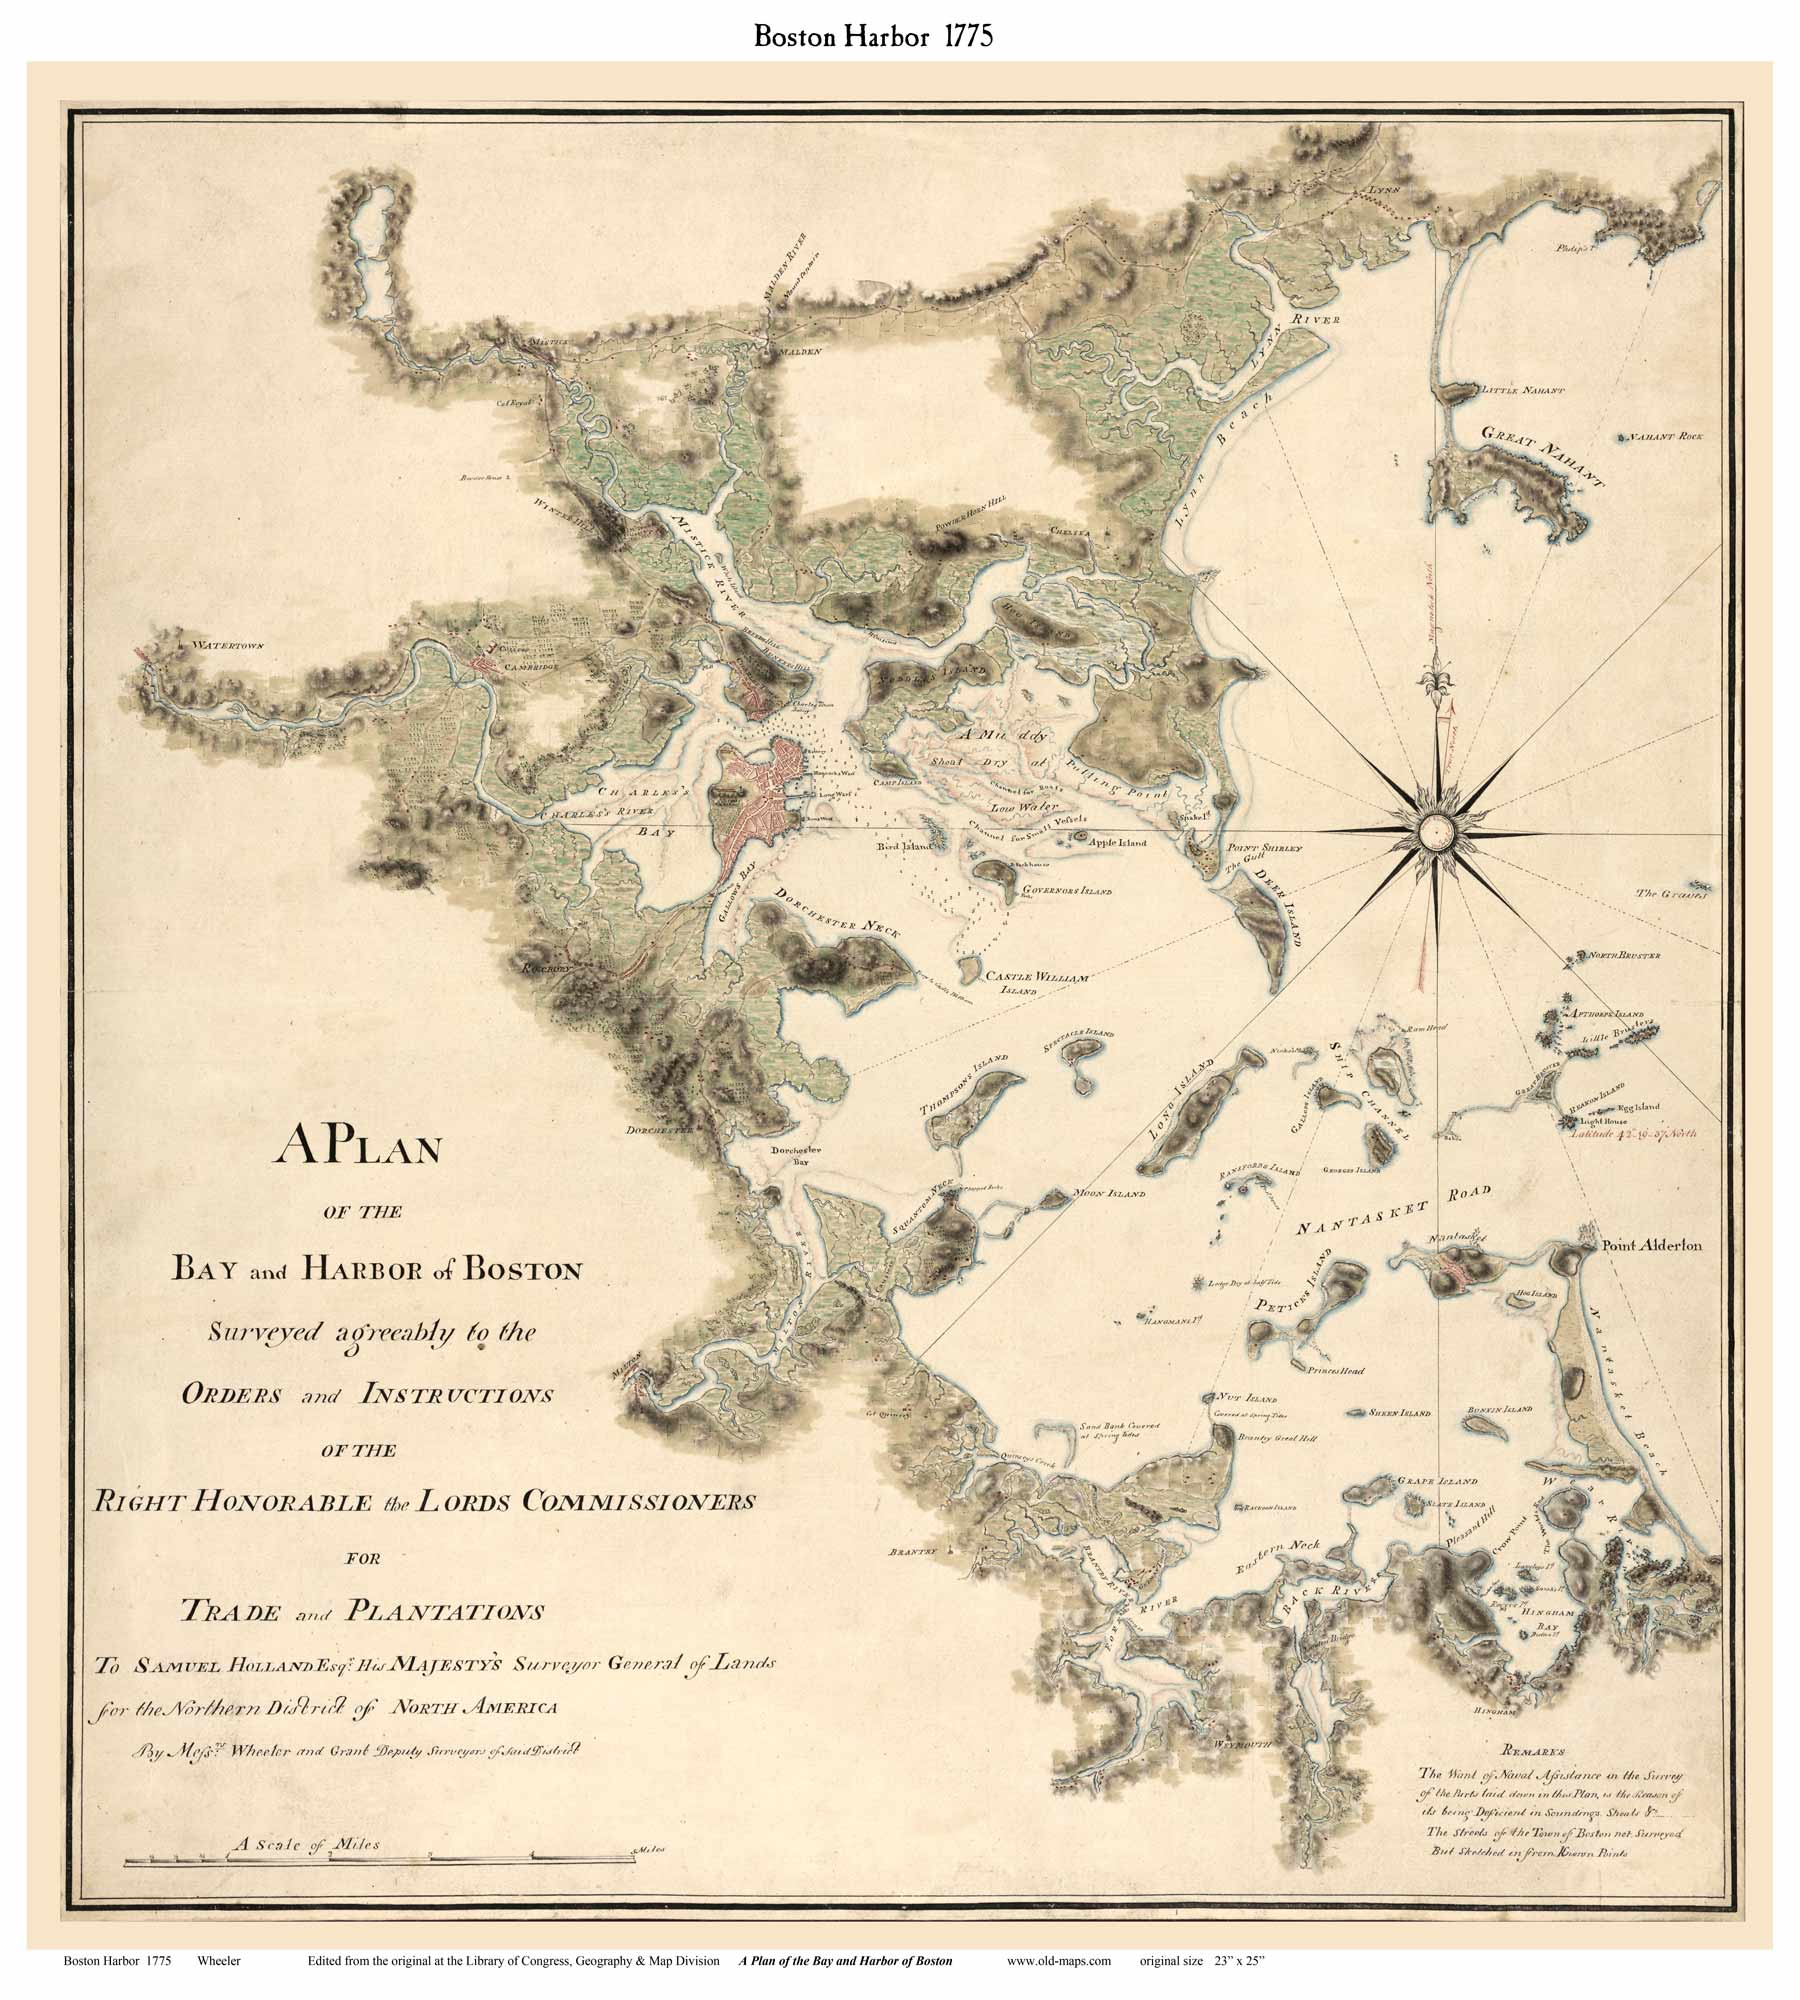 map of colonial boston Old Maps Of Boston map of colonial boston